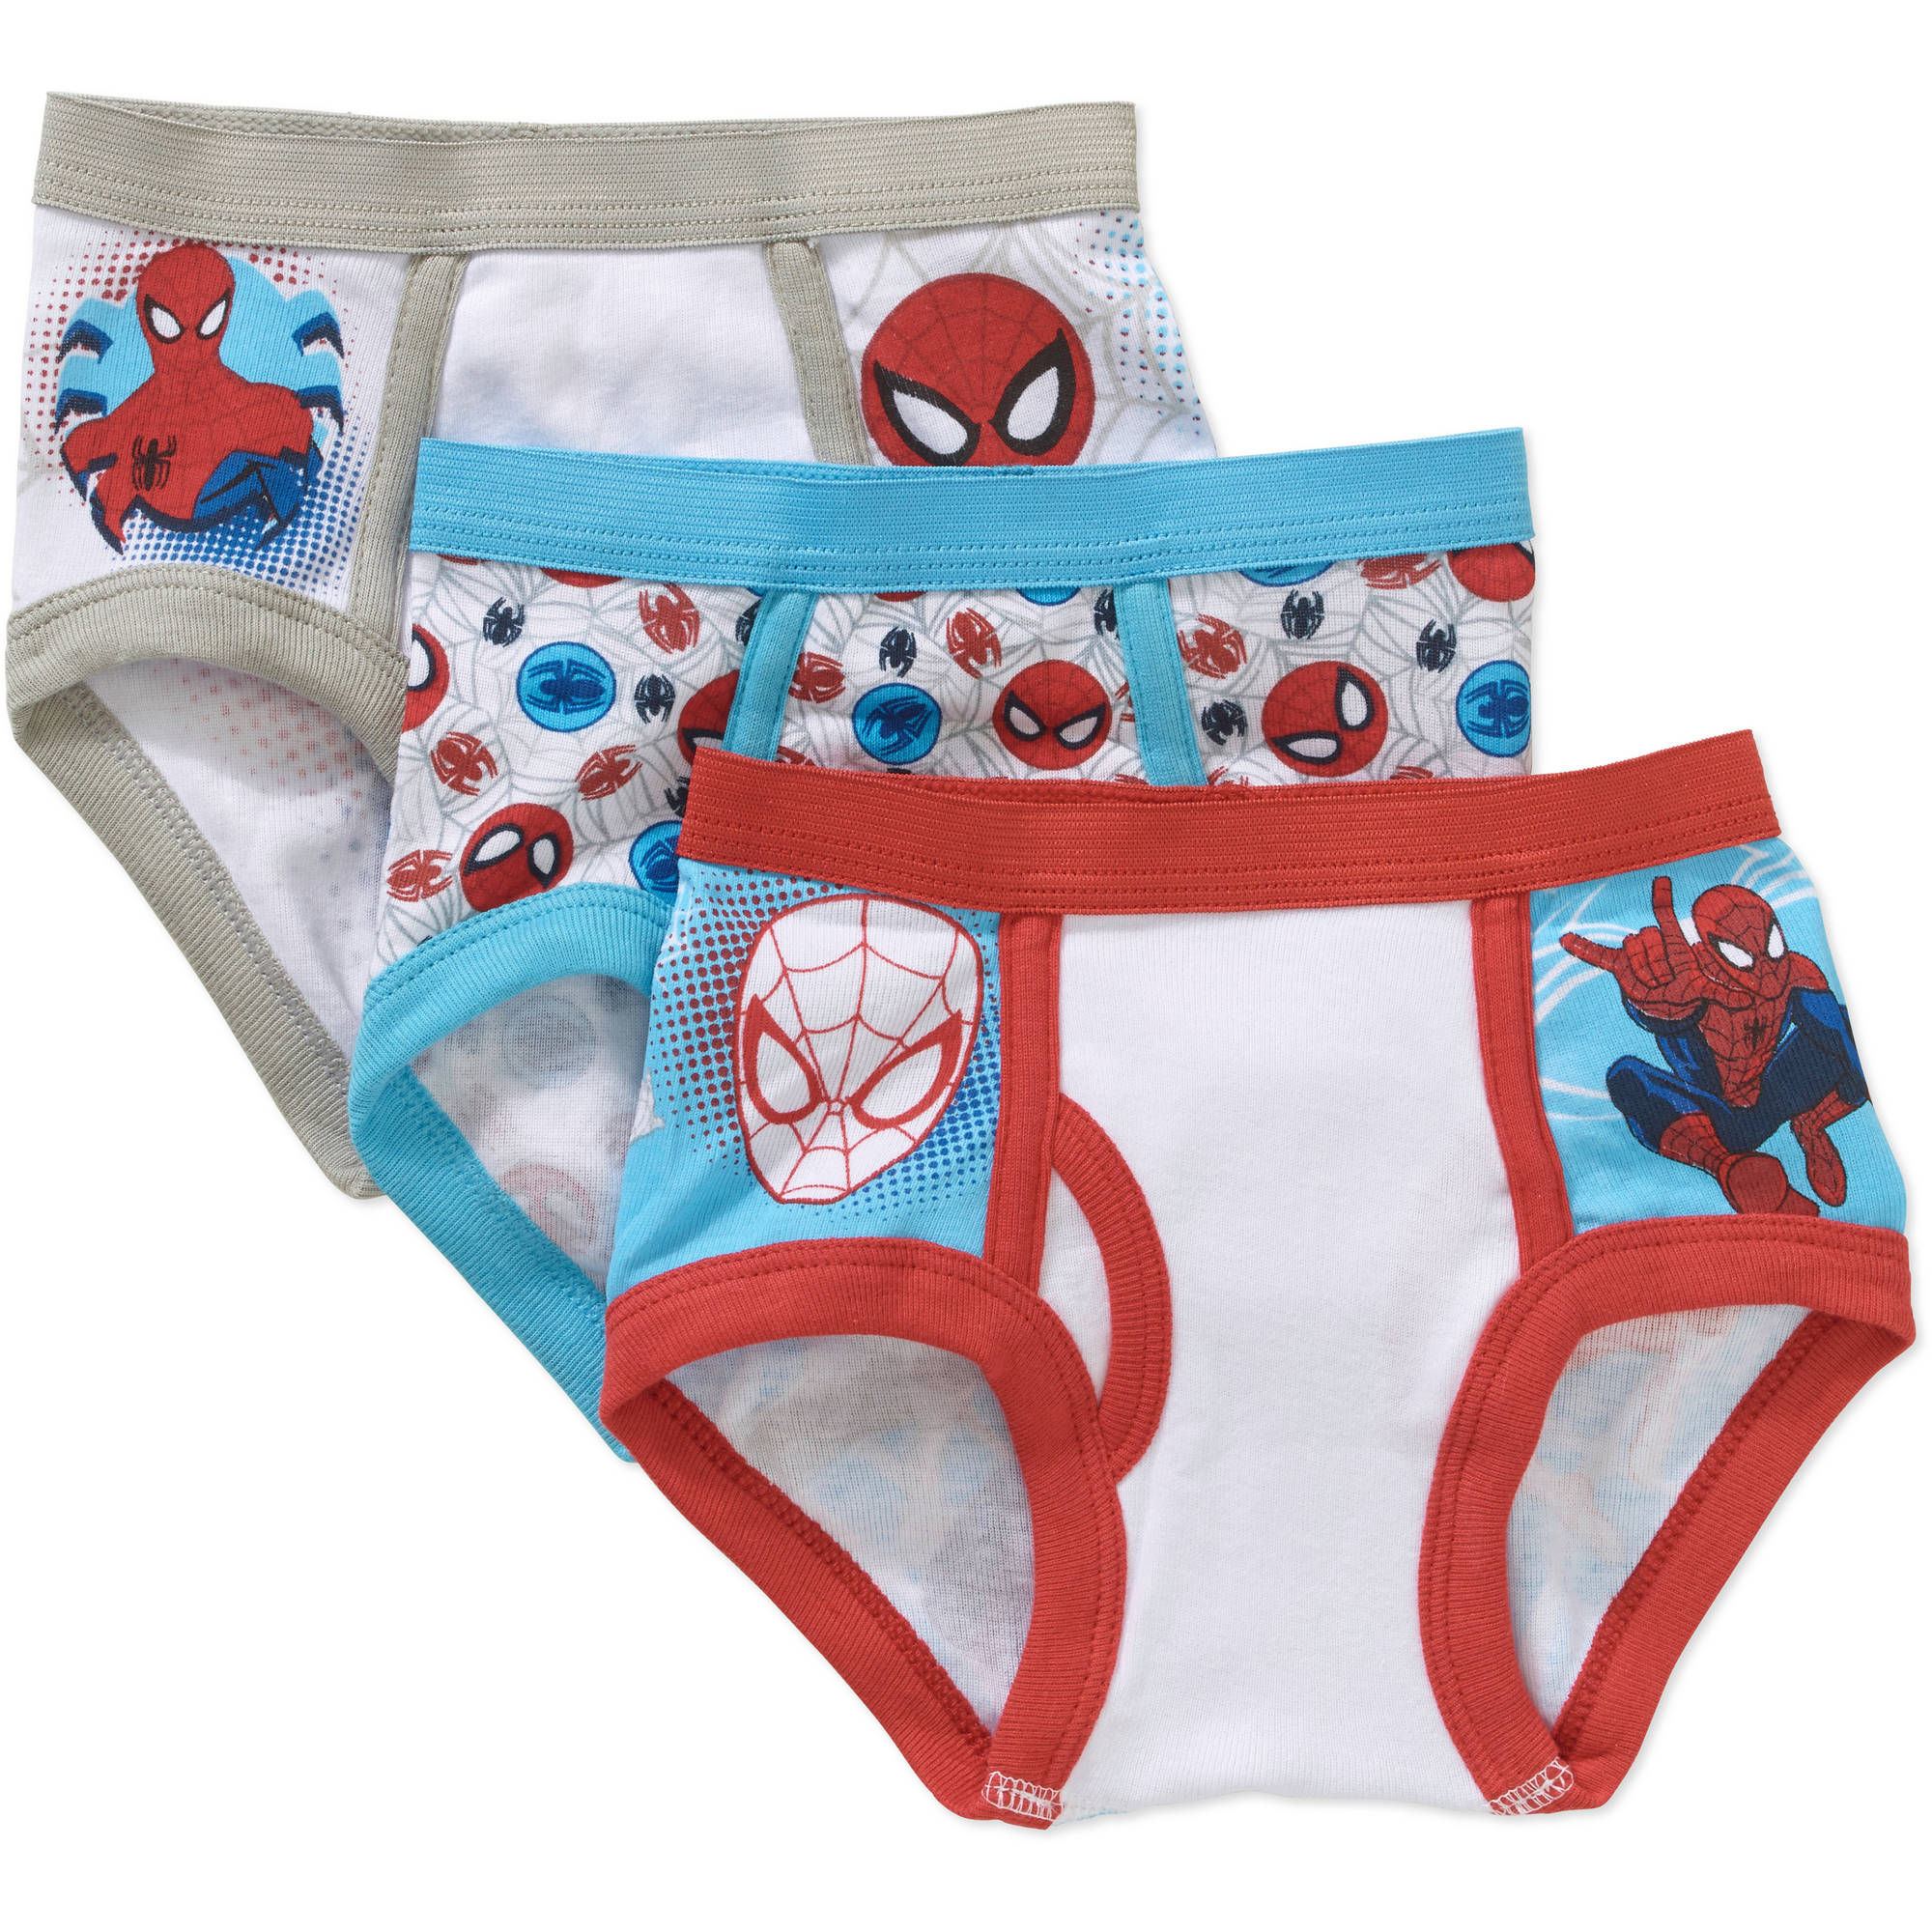 Spiderman Toddler Boys Underwear, 3-Pack